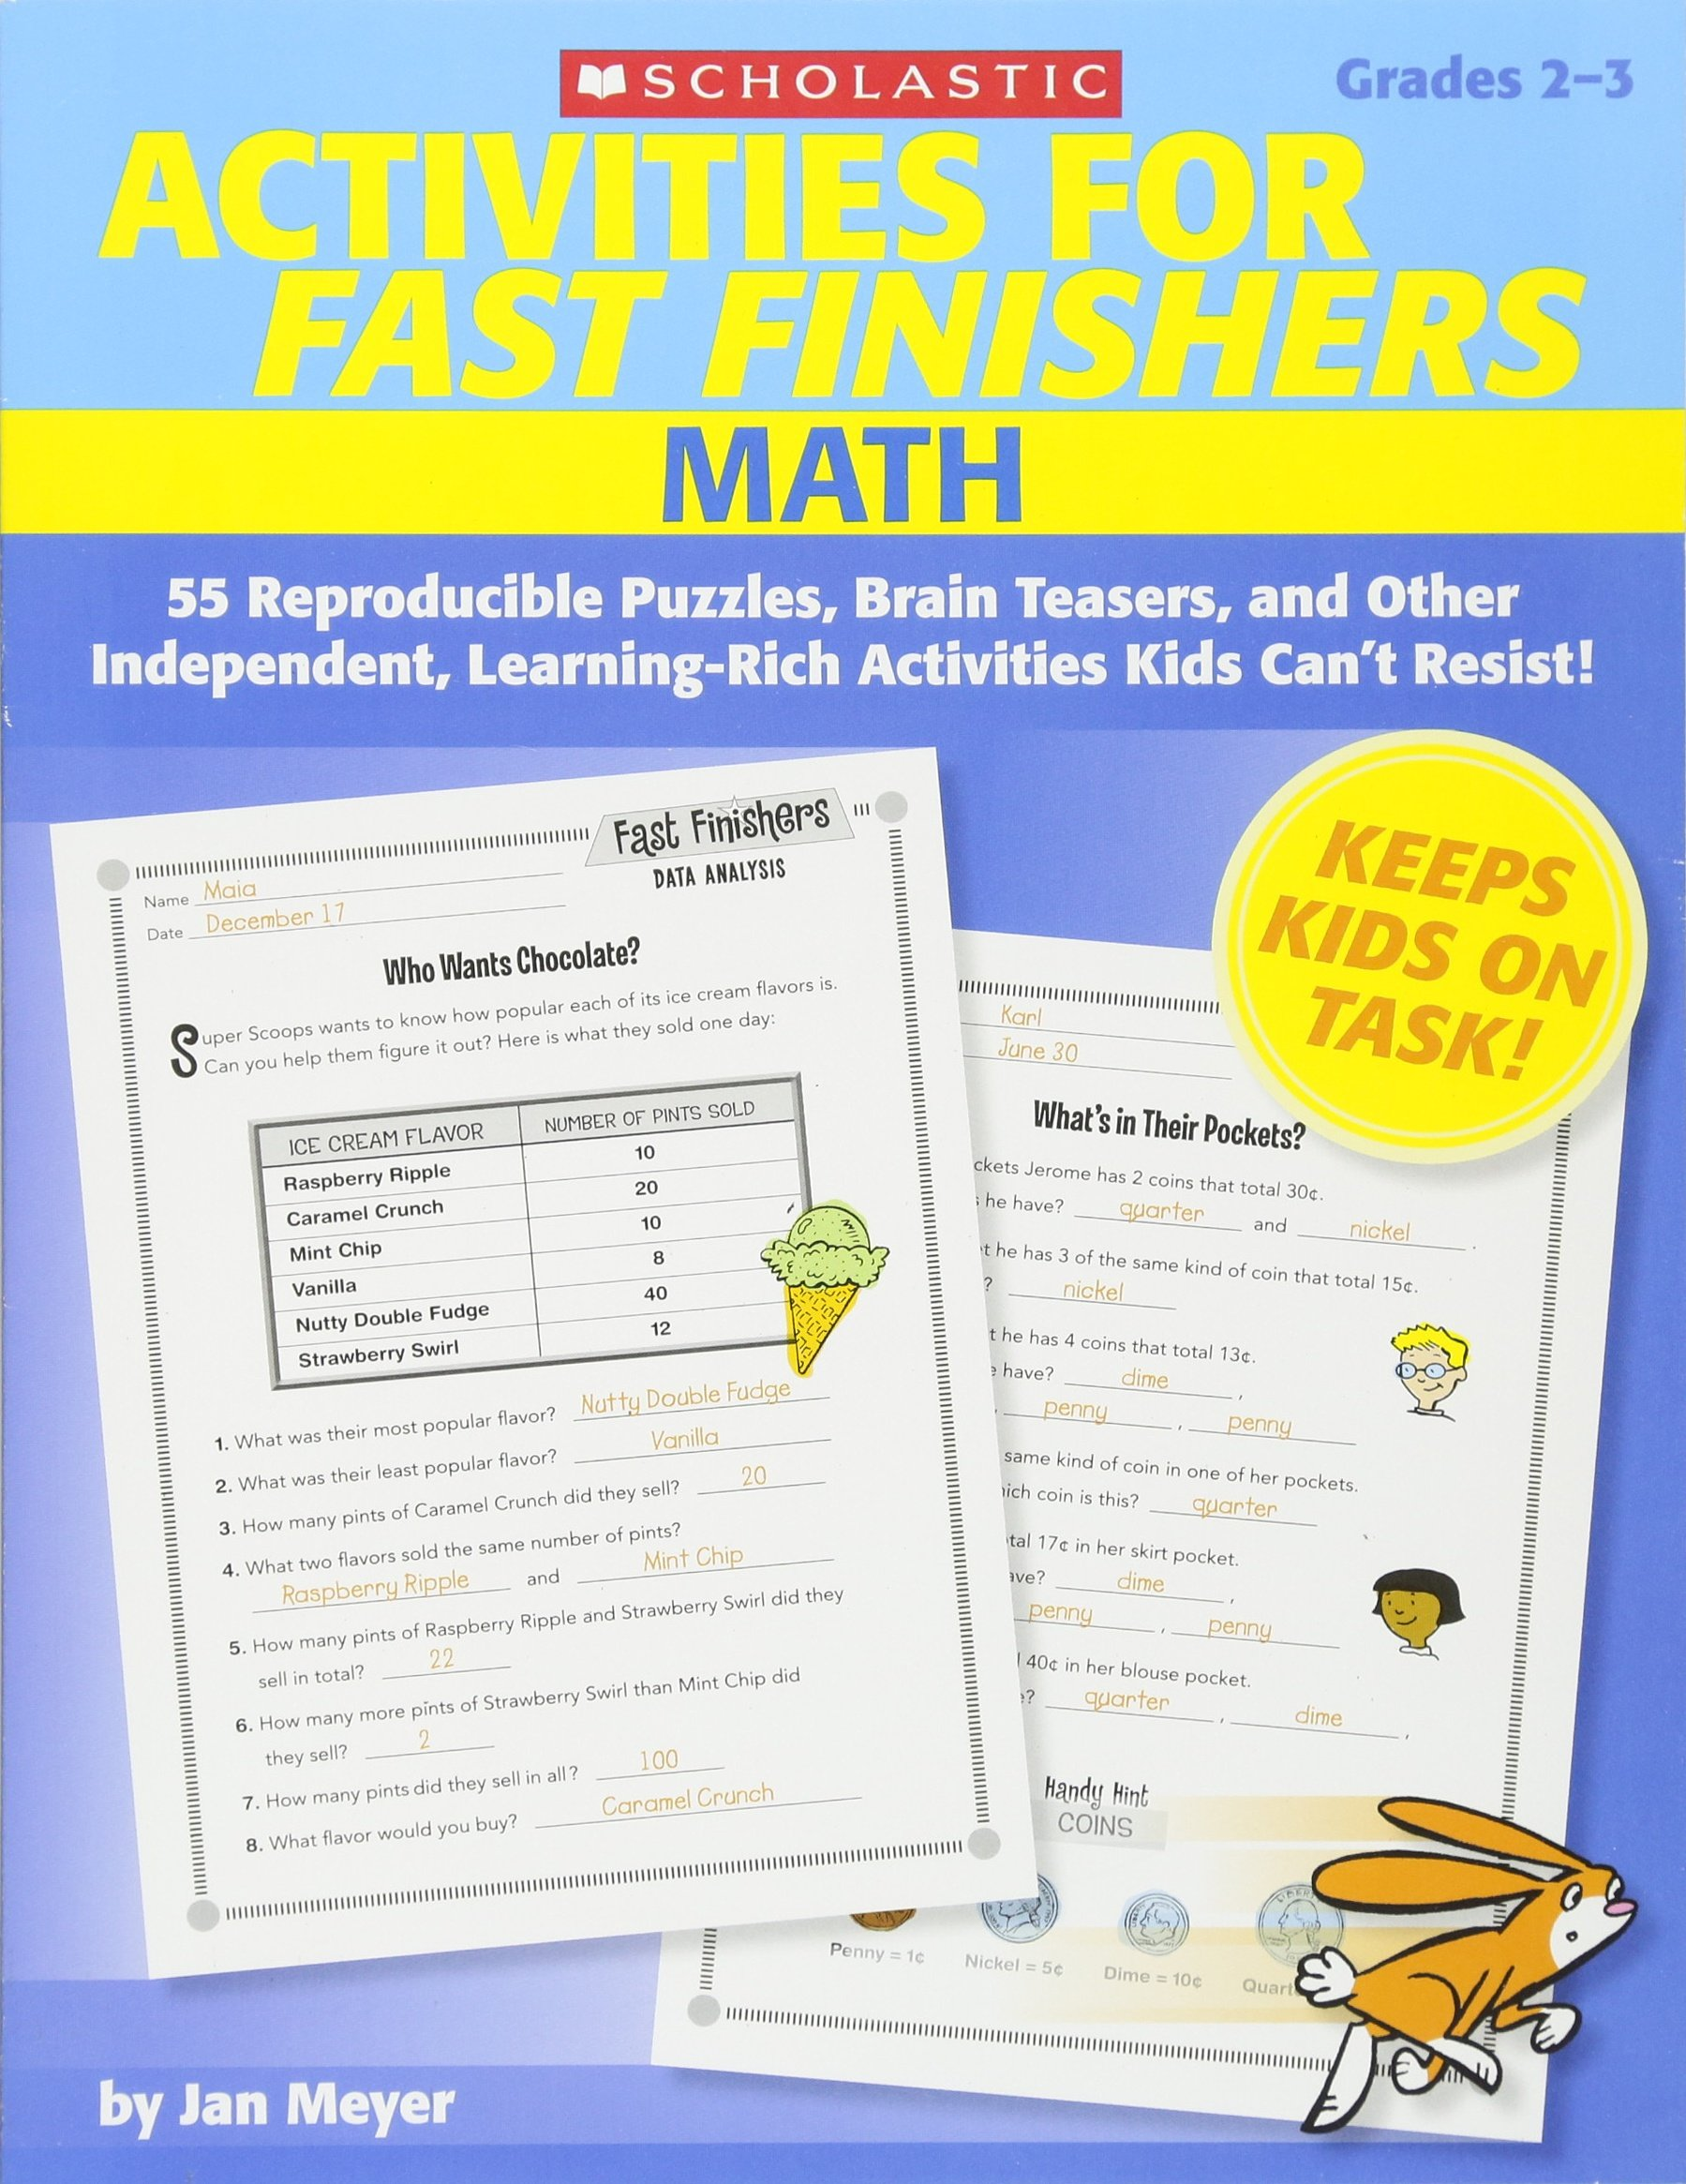 Amazon.com: Activities for Fast Finishers: Math: 55 Reproducible Puzzles,  Brain Teasers, and Other Independent, Learning-Rich Activities Kids Can't  Resist!